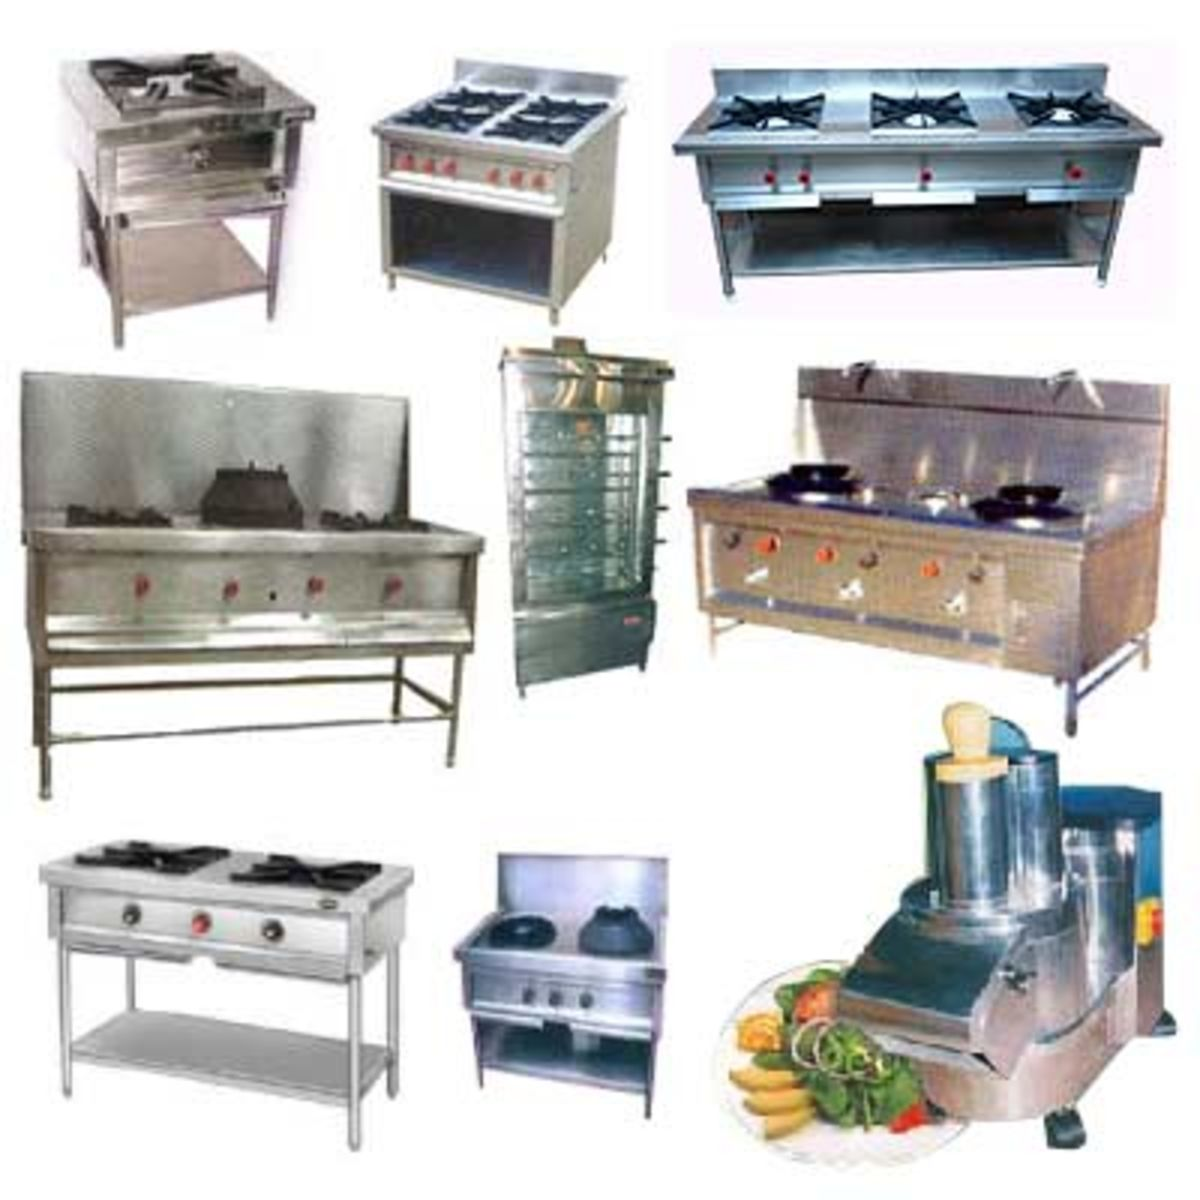 Top 5 commercial kitchen equipment suppliers in australia for Kitchen equipment list